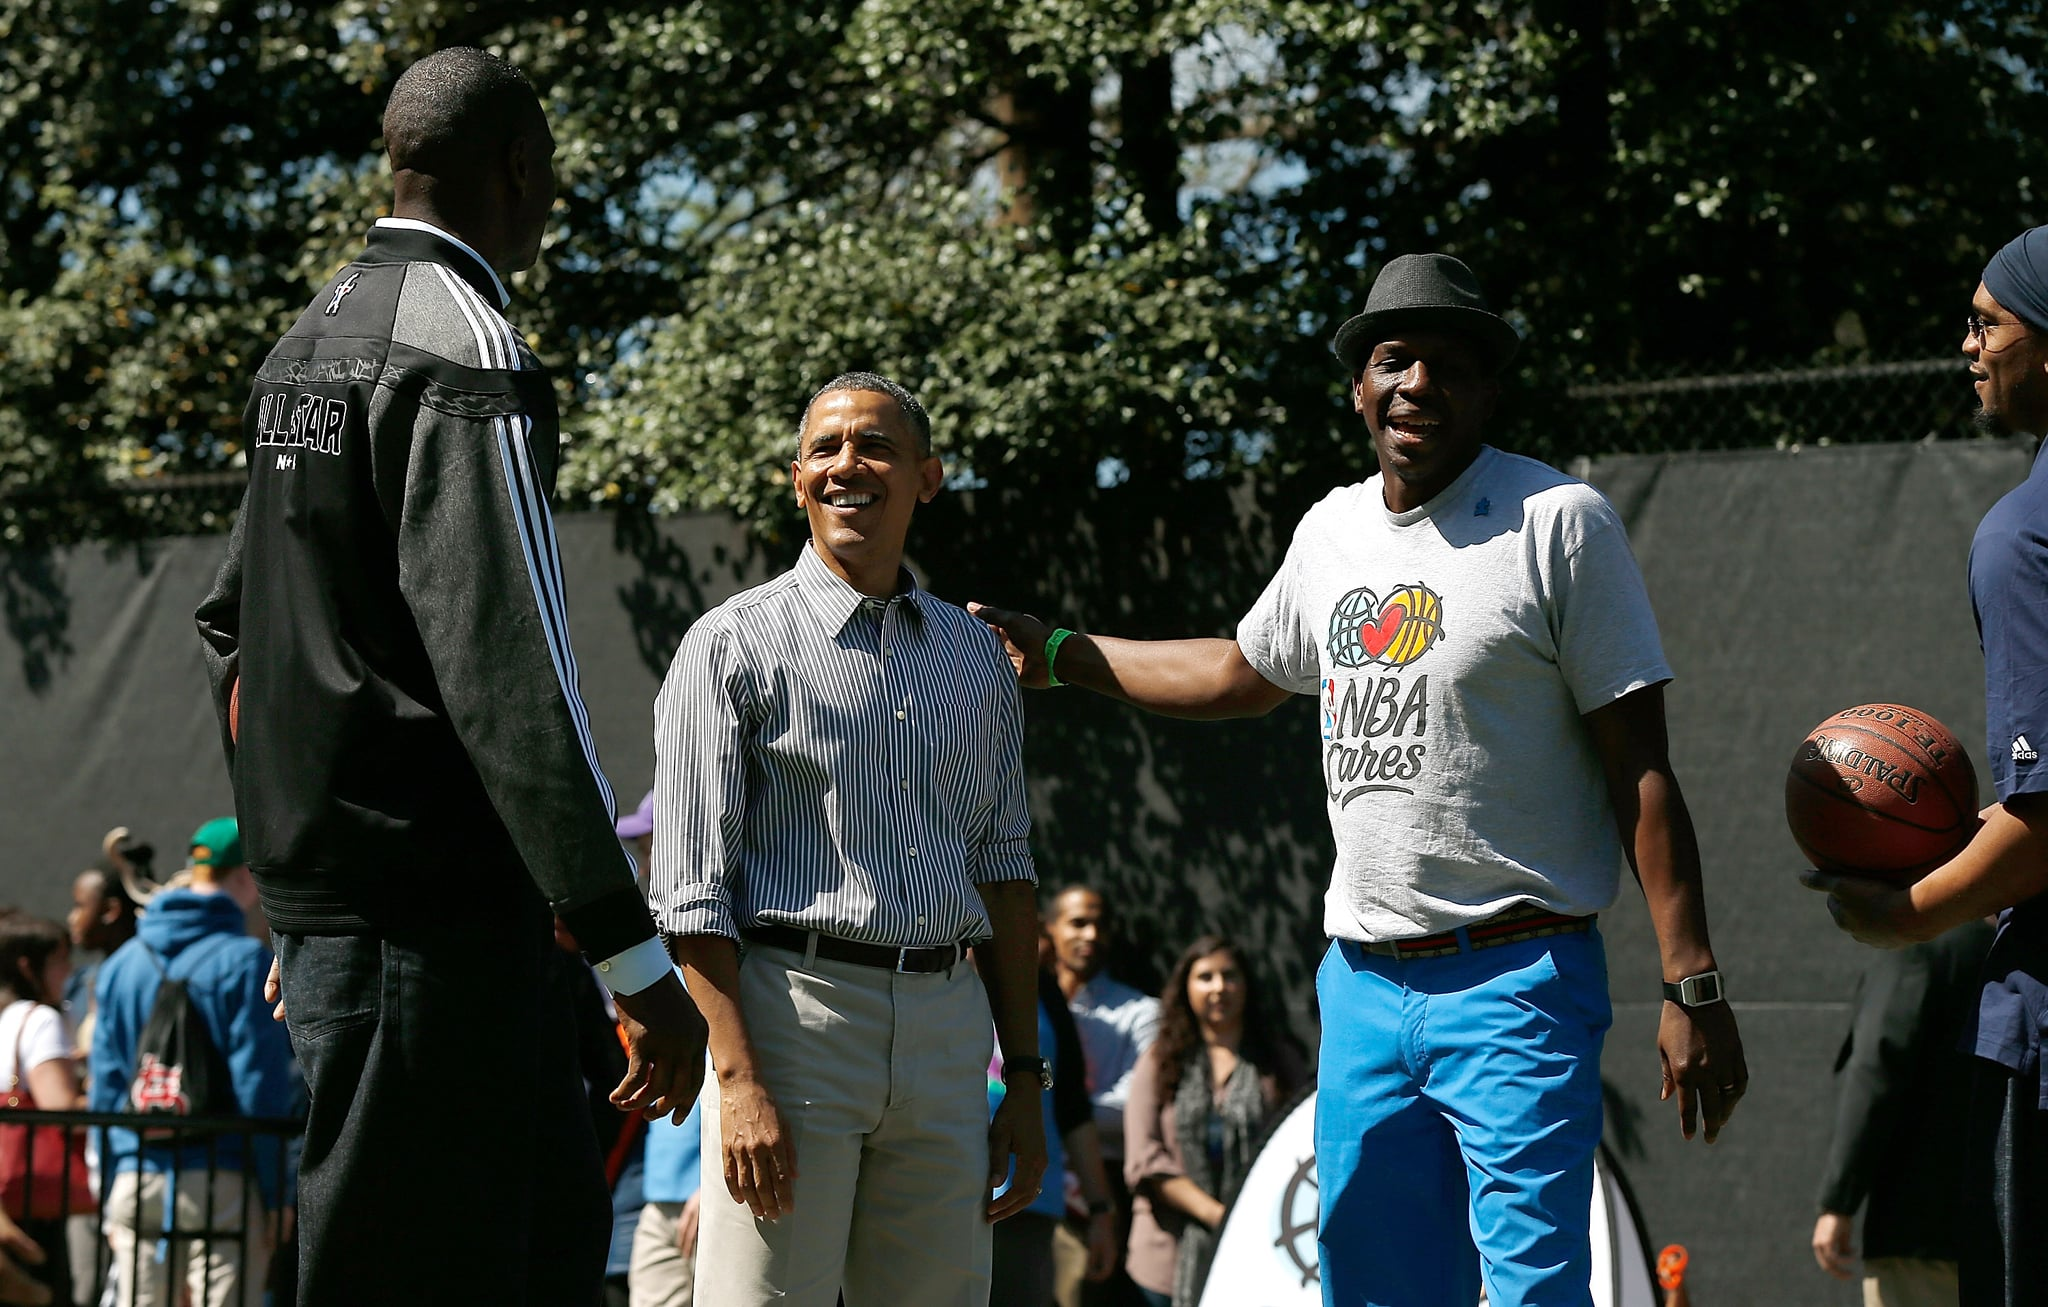 He was in good company with a few NBA players.